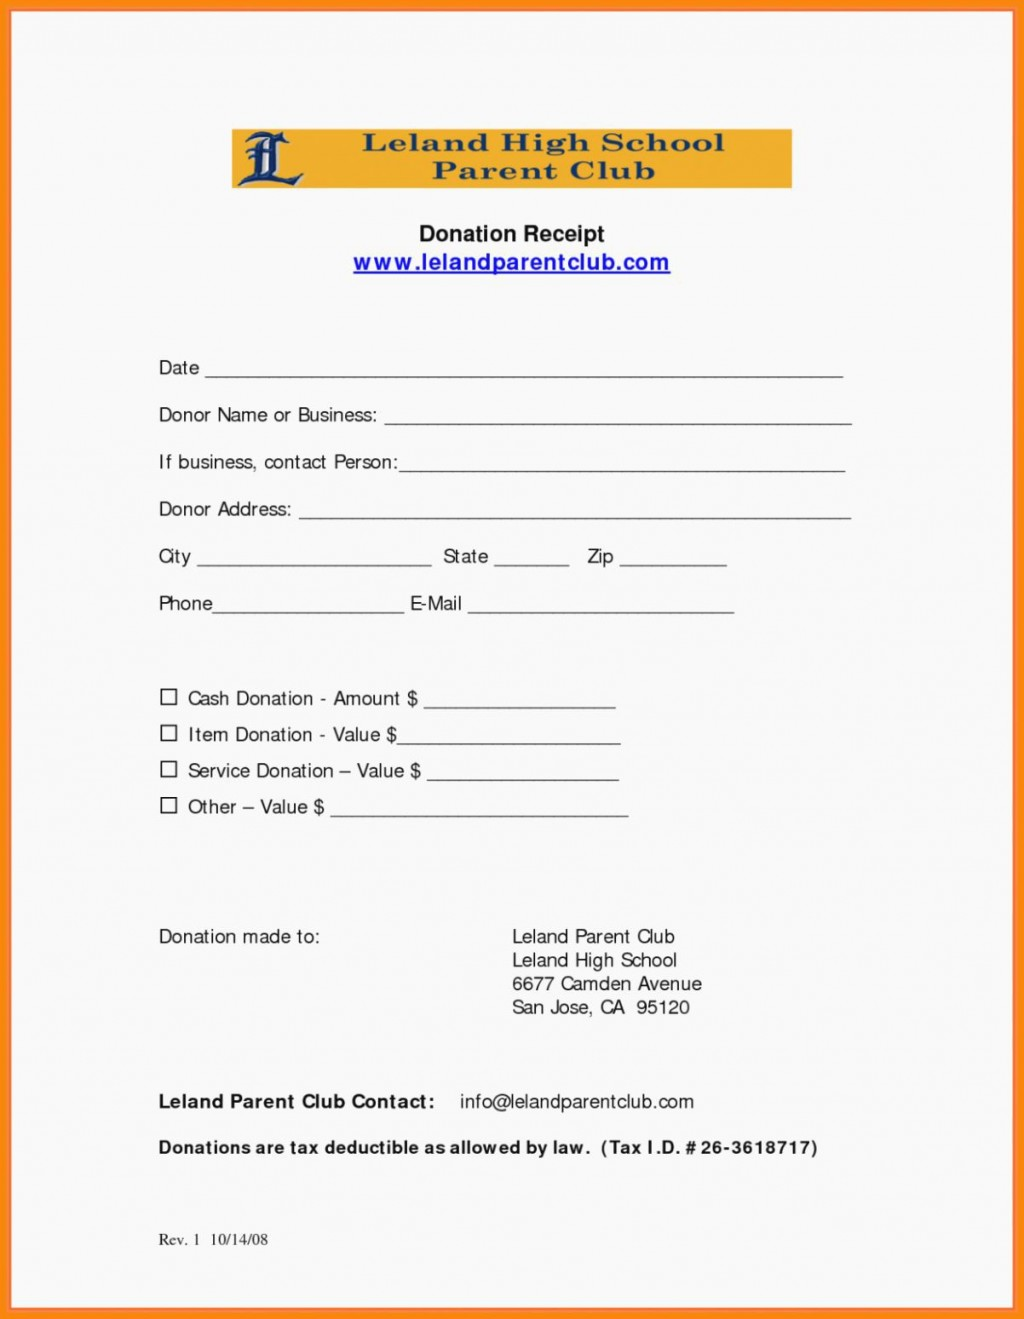 006 Fascinating Tax Donation Form Template Picture  Ir Charitable Receipt Deductible ExampleLarge